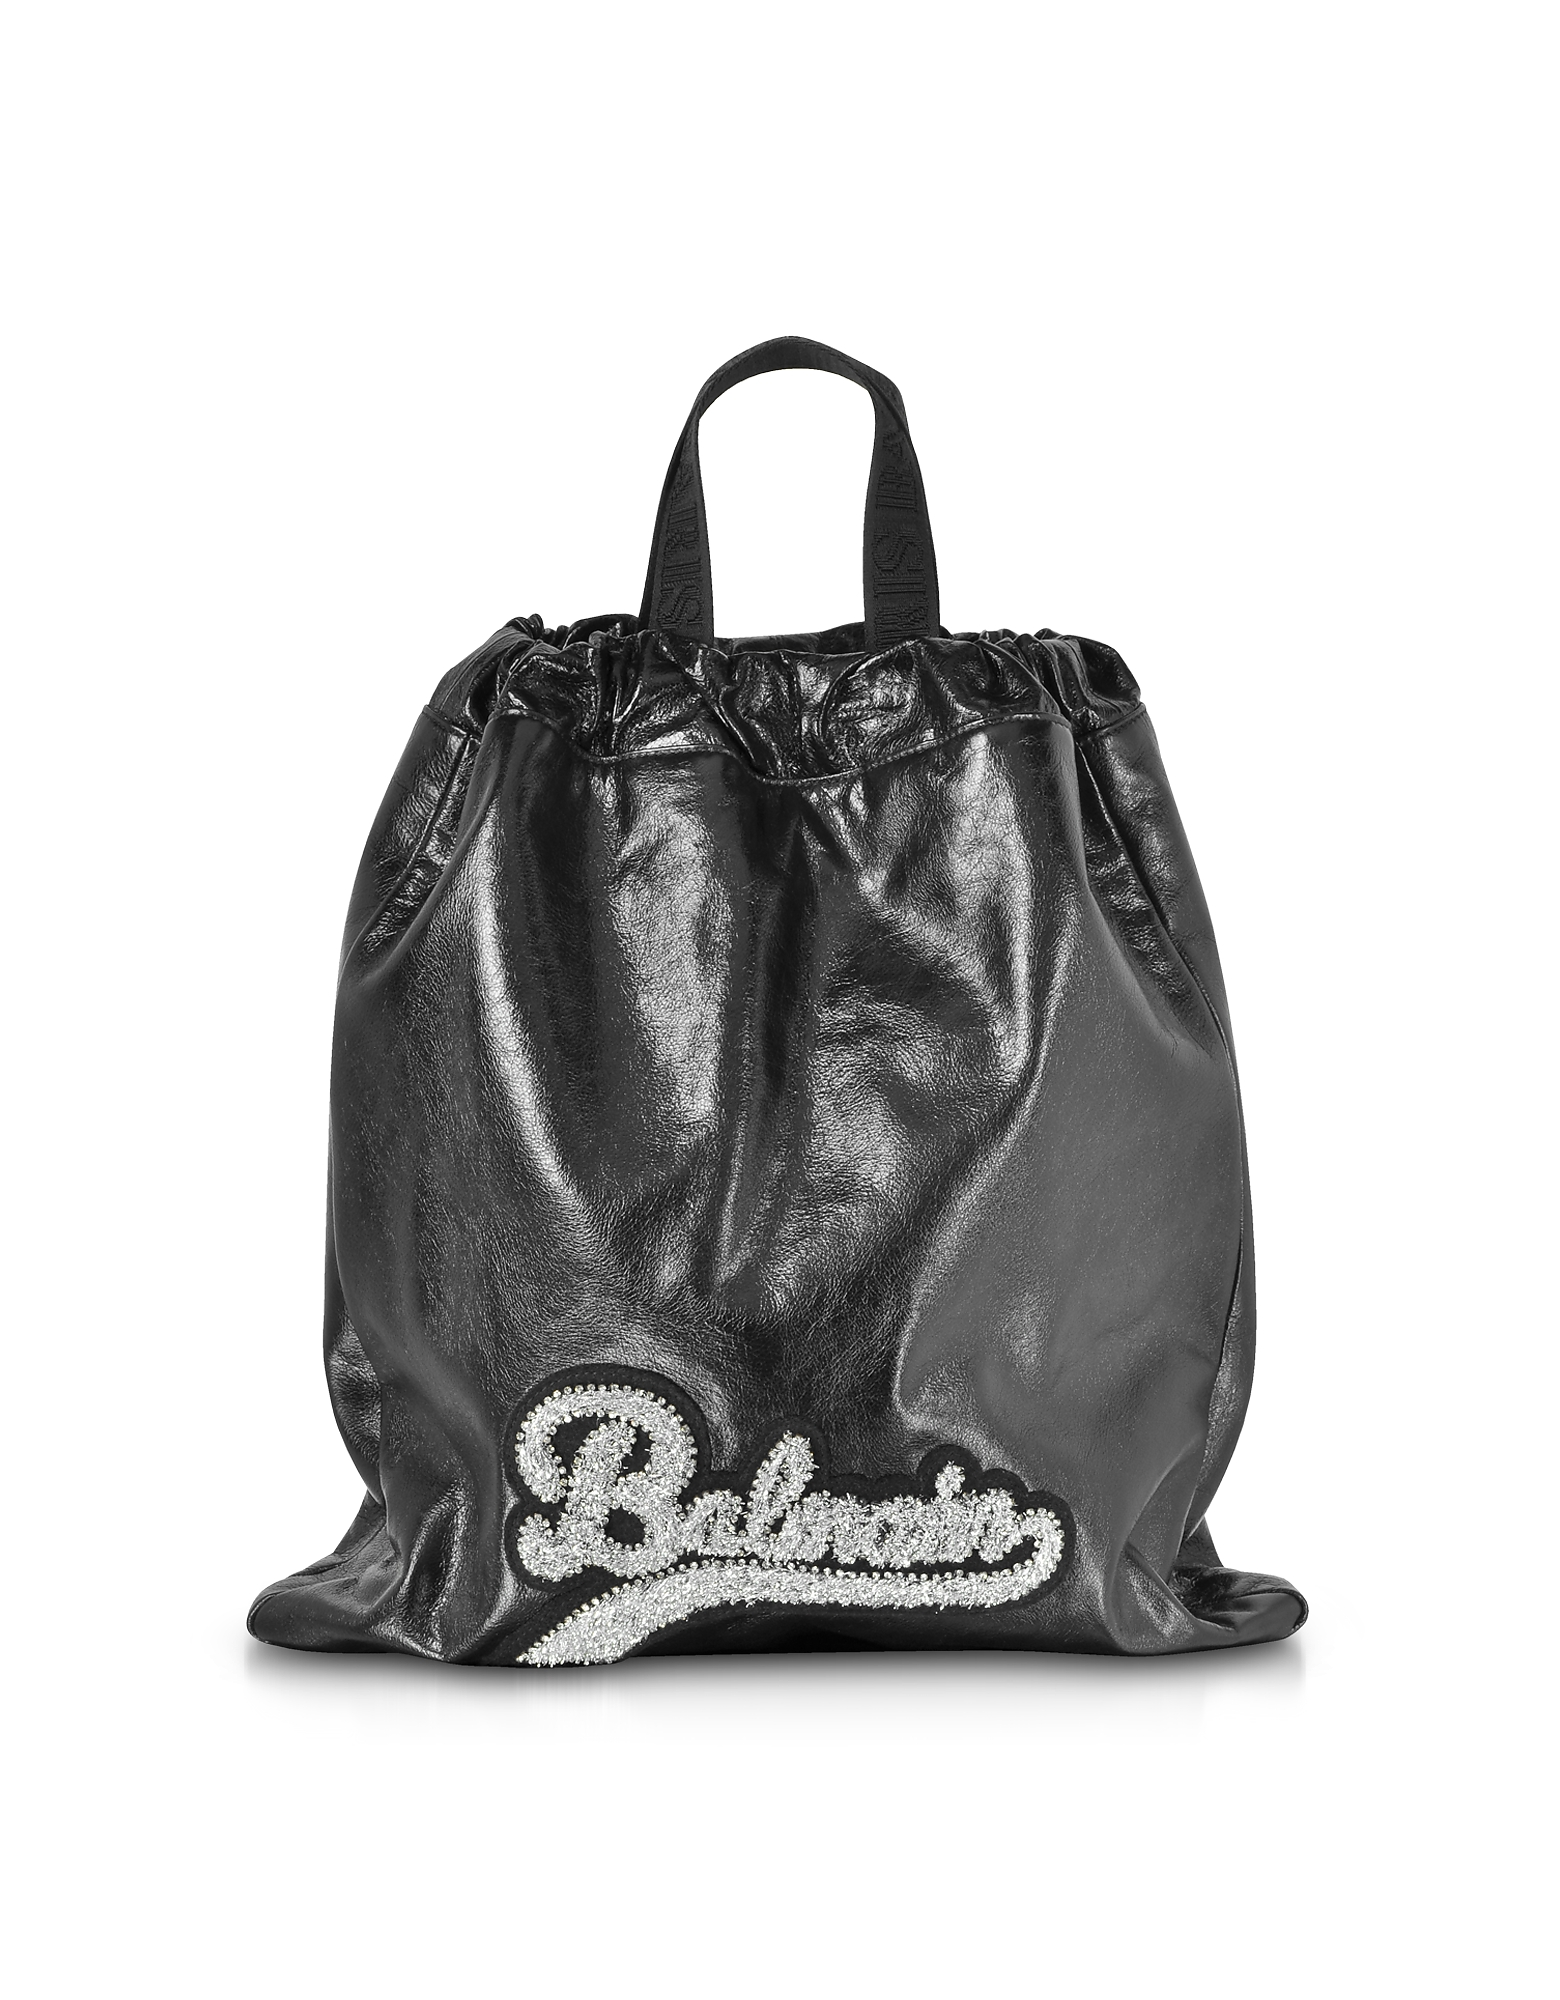 Image of Balmain Designer Backpacks, Black Leather Blink Backpack